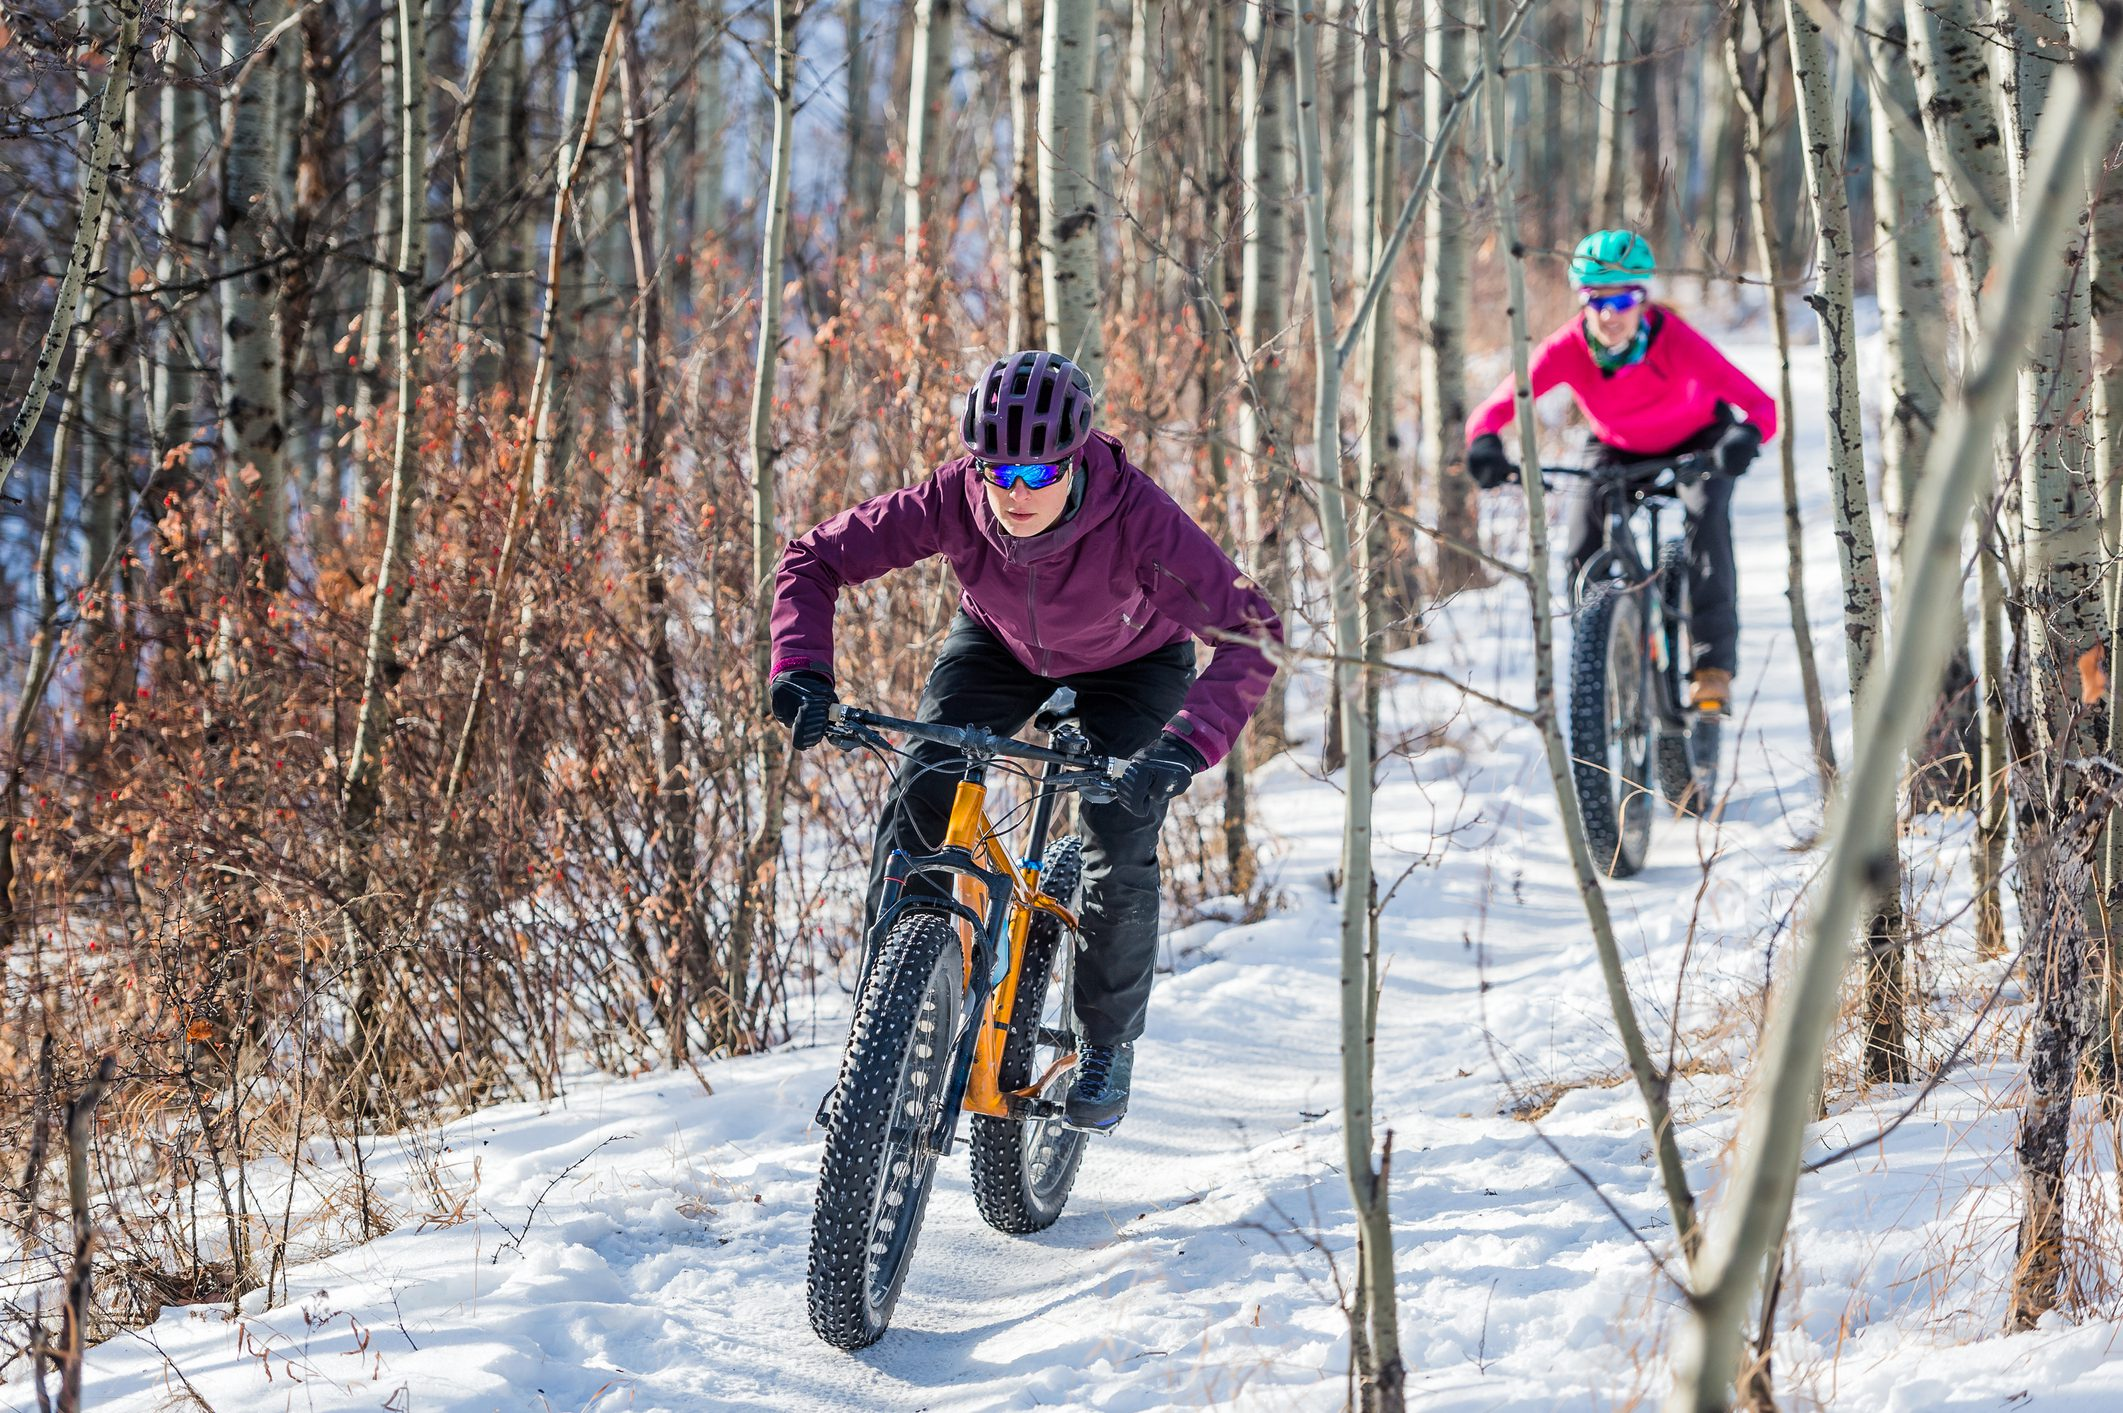 two female athletes riding fat bikes in the snow